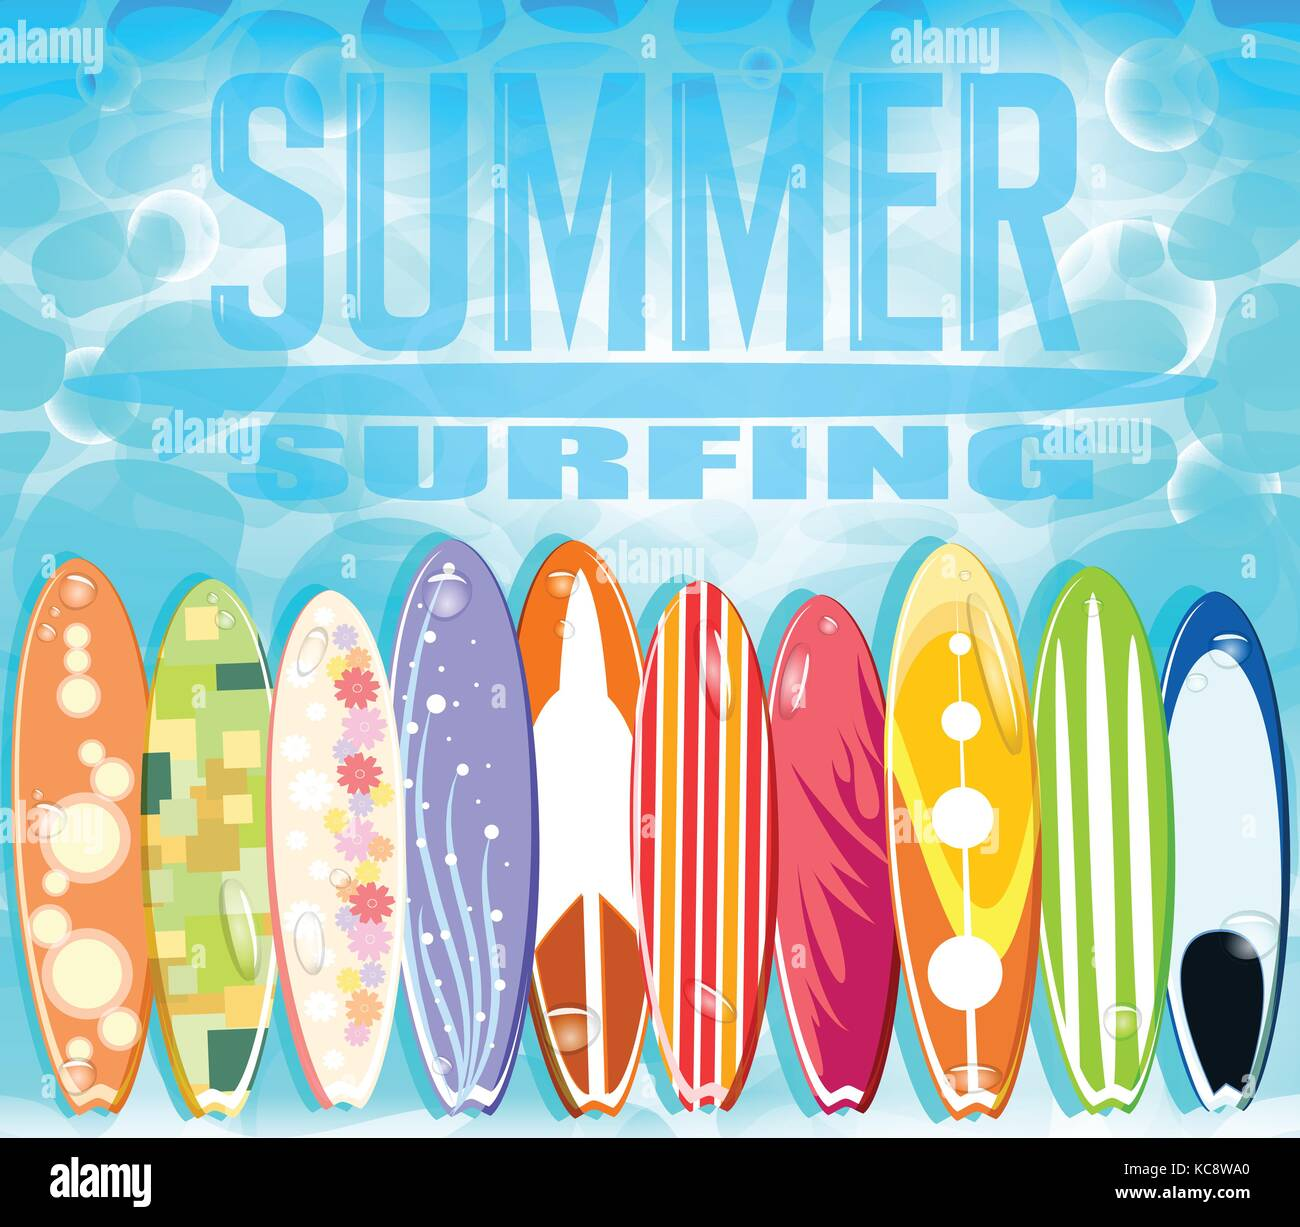 Summer Surfing Design With Set Of Colorful Surfboards Floating In